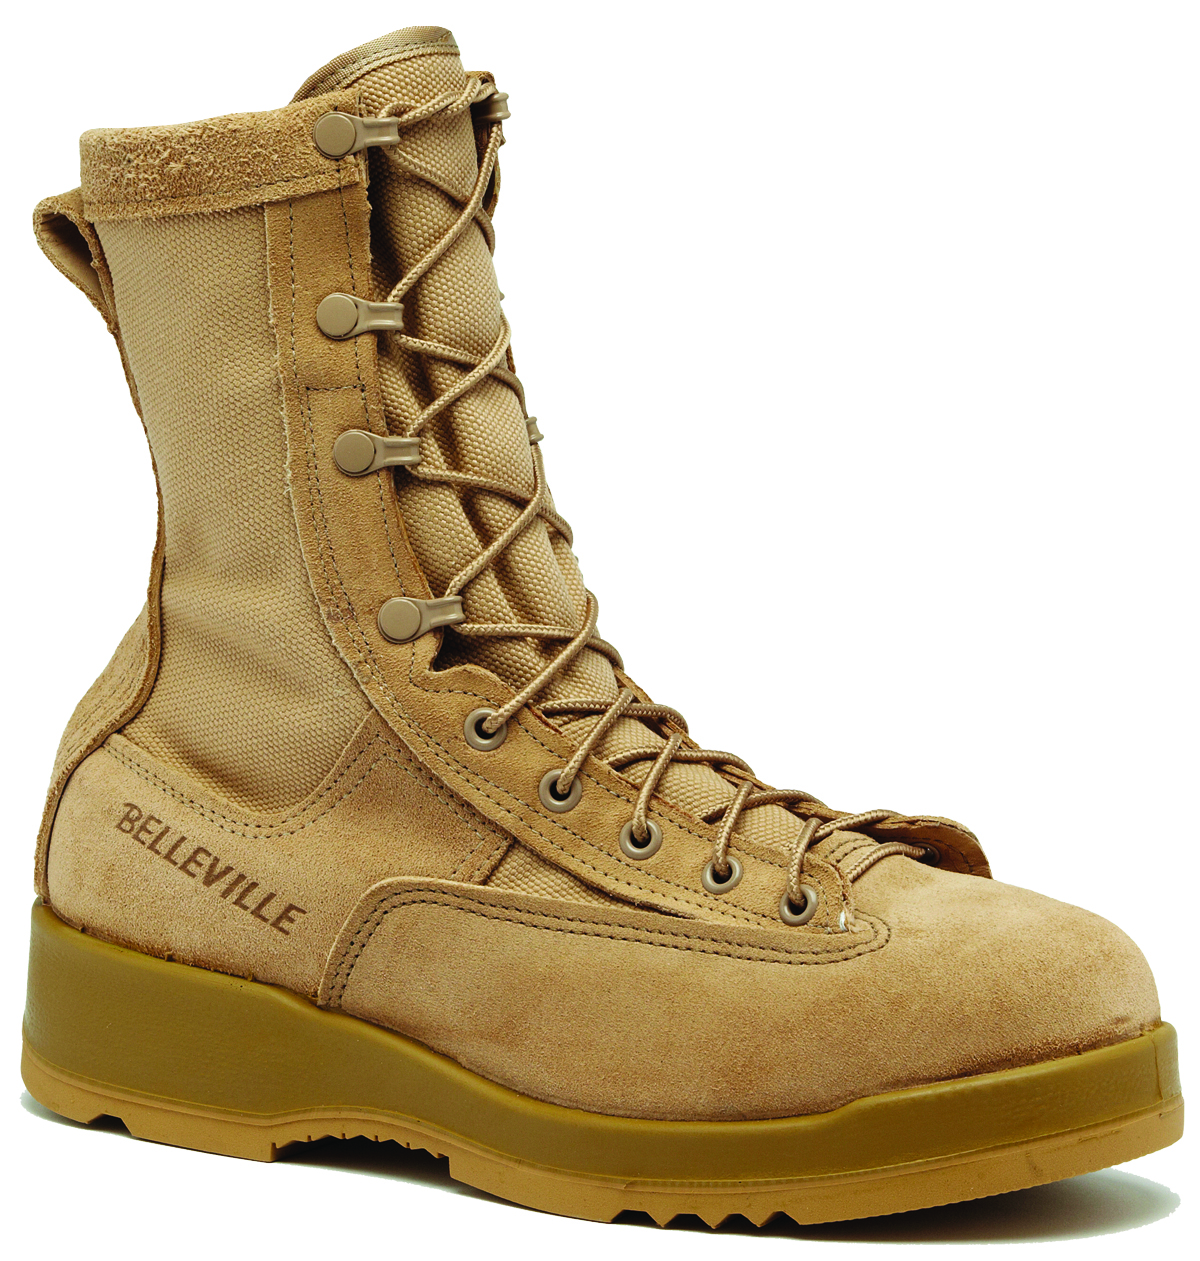 795 Colder Weather 200g Insulated Waterproof Combat Boot